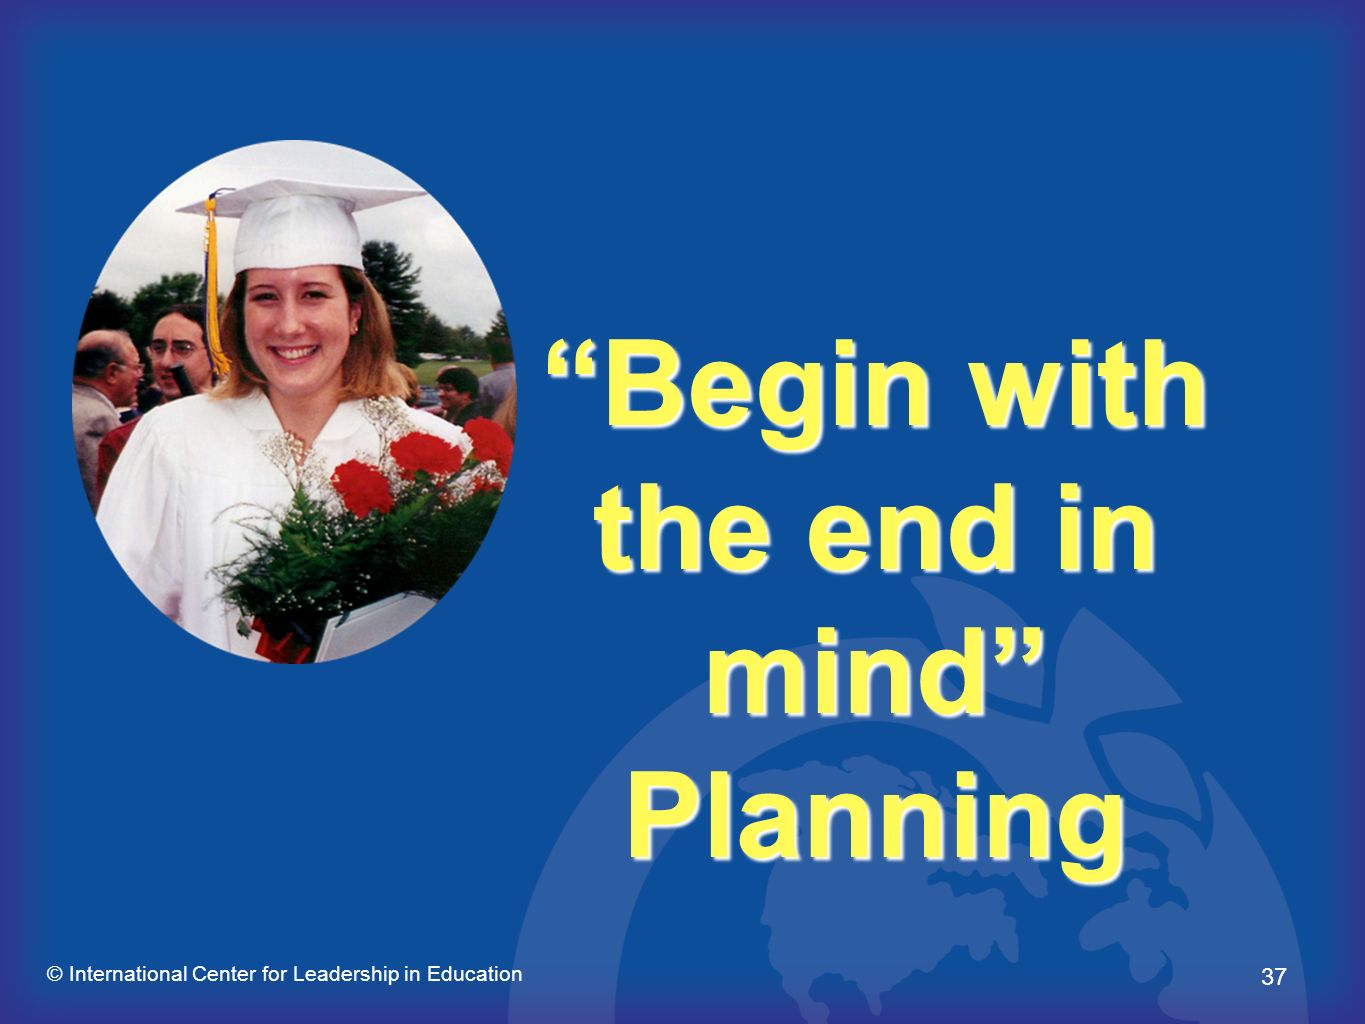 Begin with the end in mind Planning